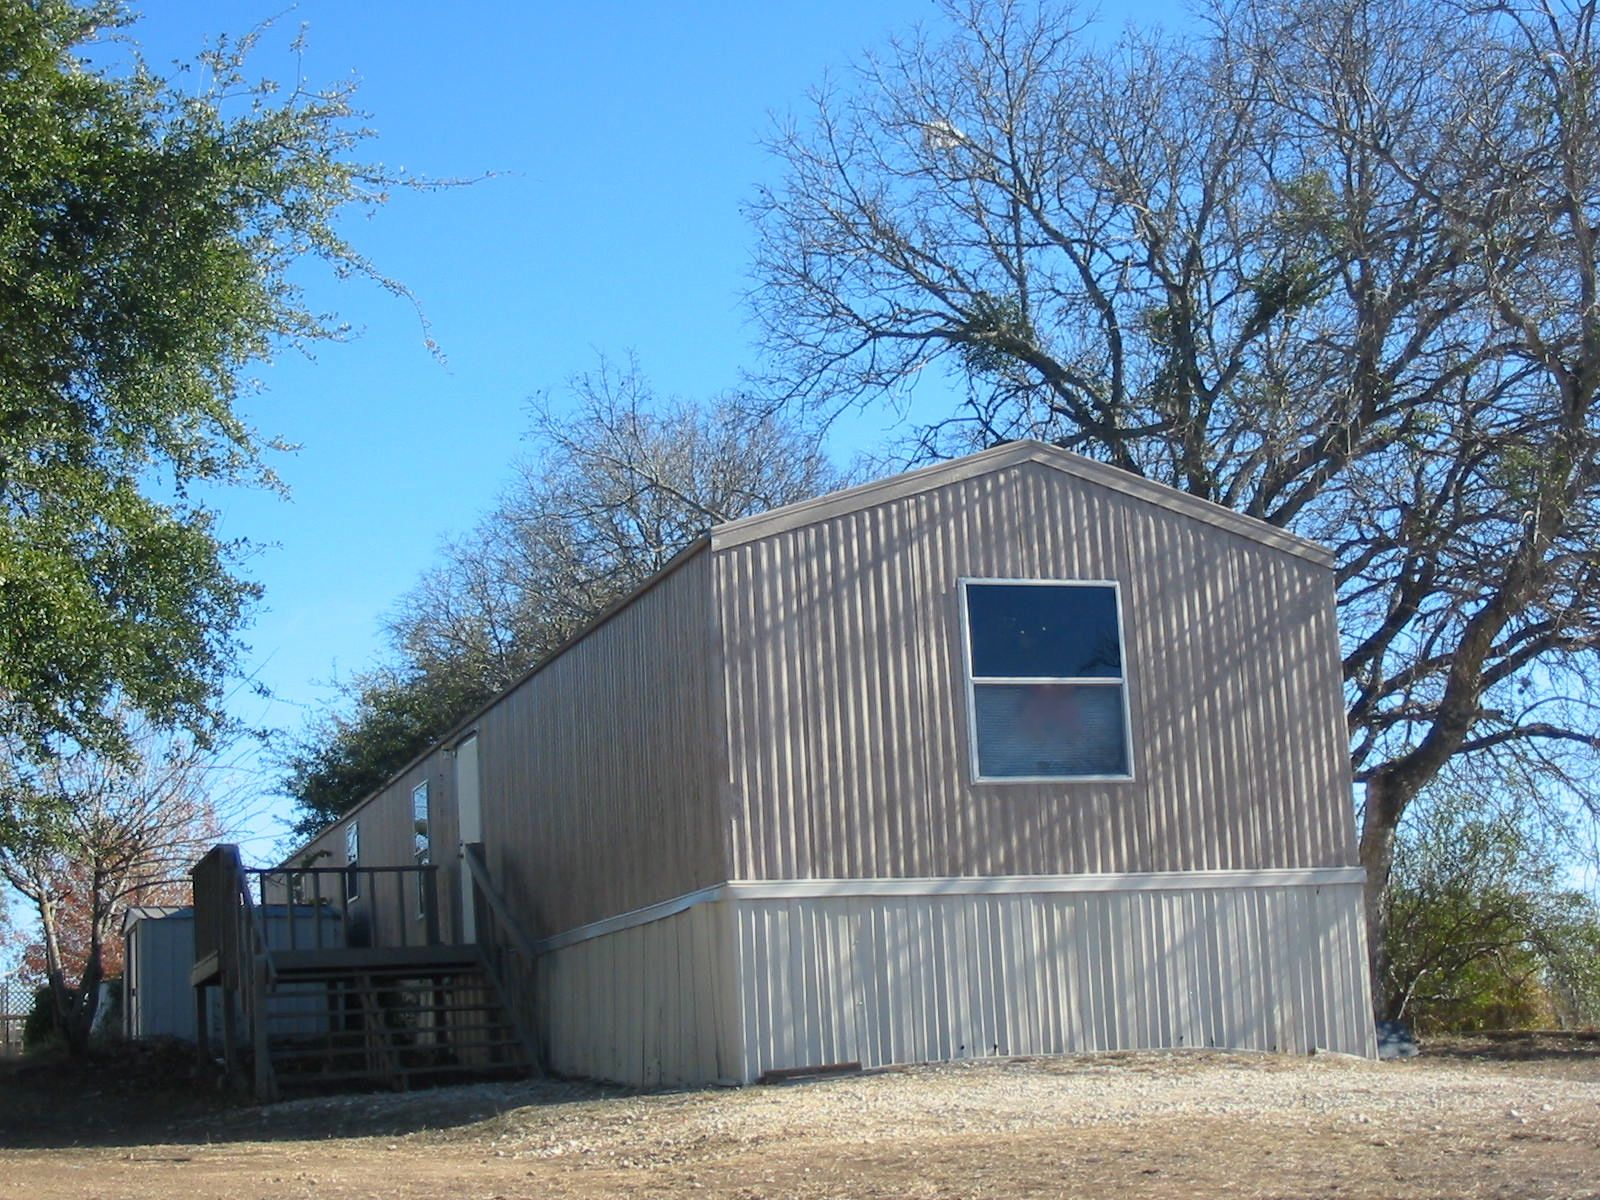 1 mobile home with aluminum siding